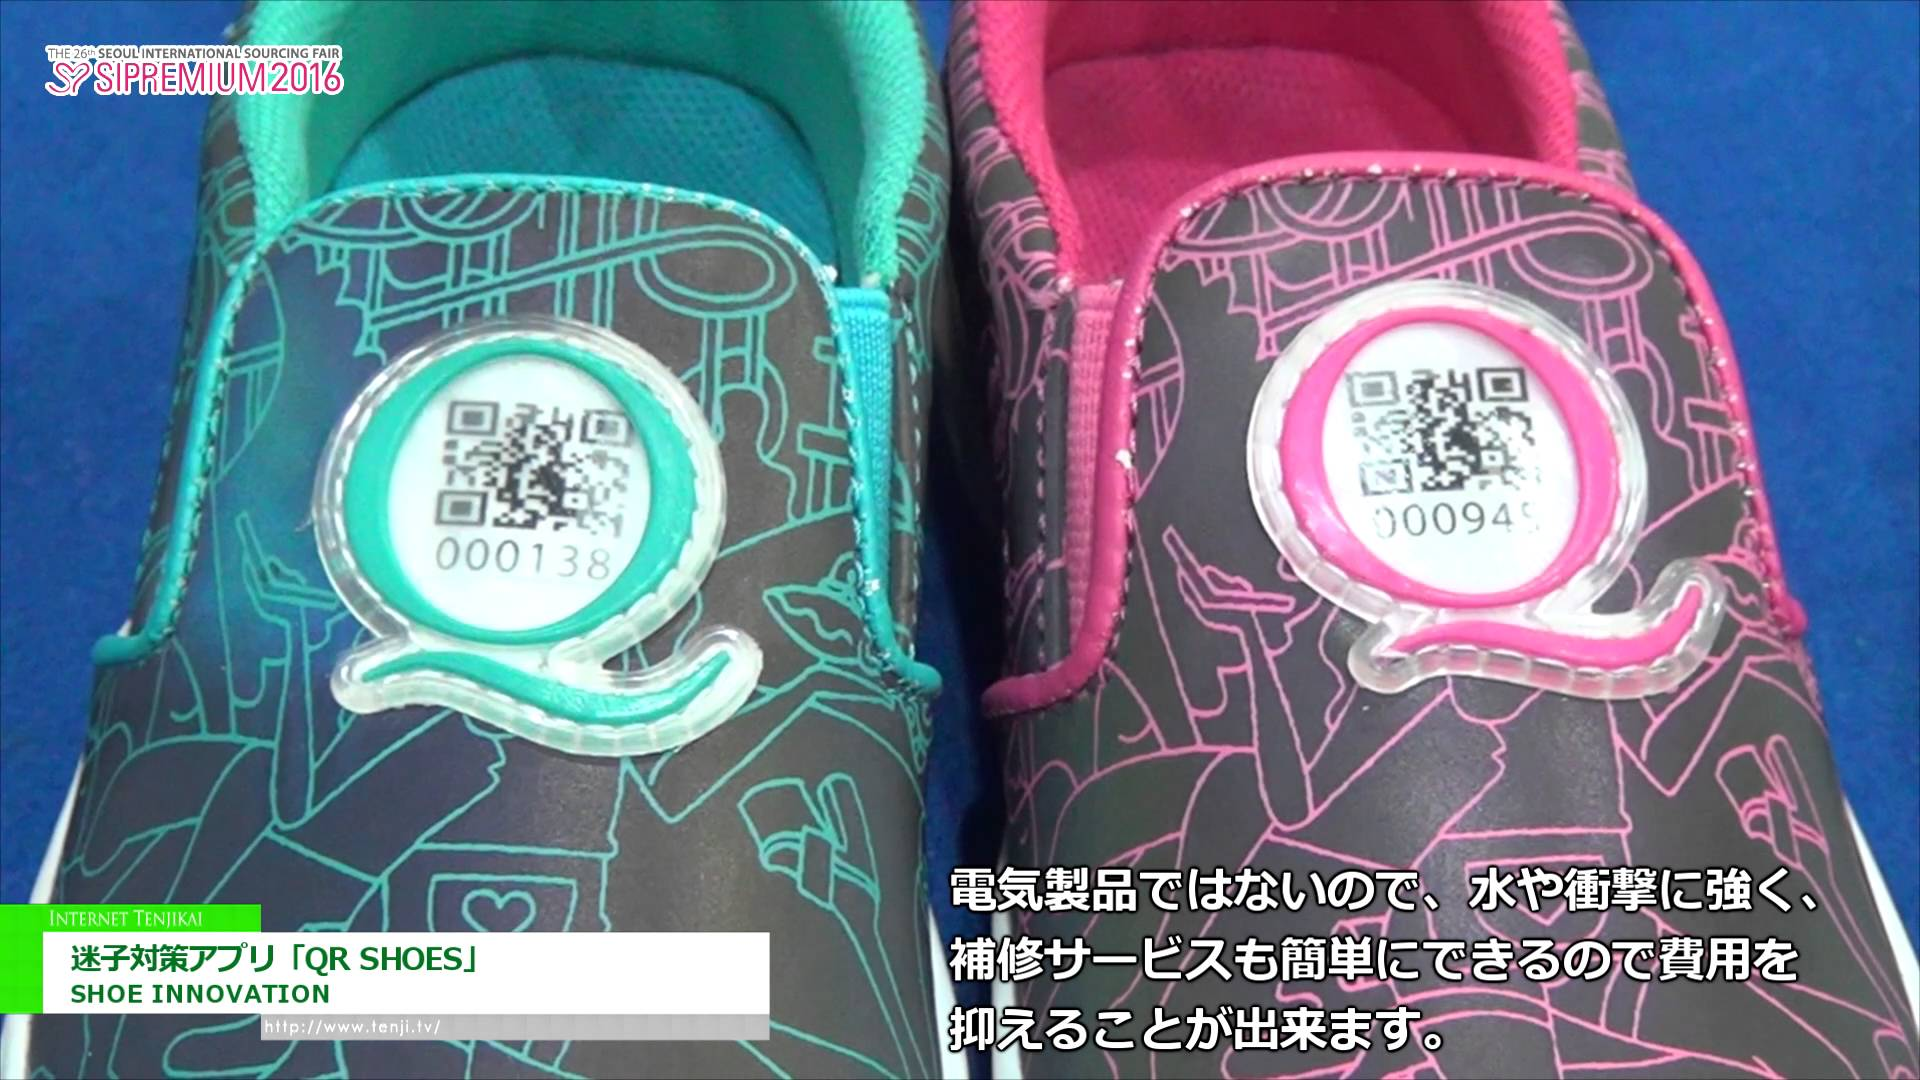 [SIPREMIUM 2016] 迷子対策アプリ「QR SHOES」 – SHOE INNOVATION